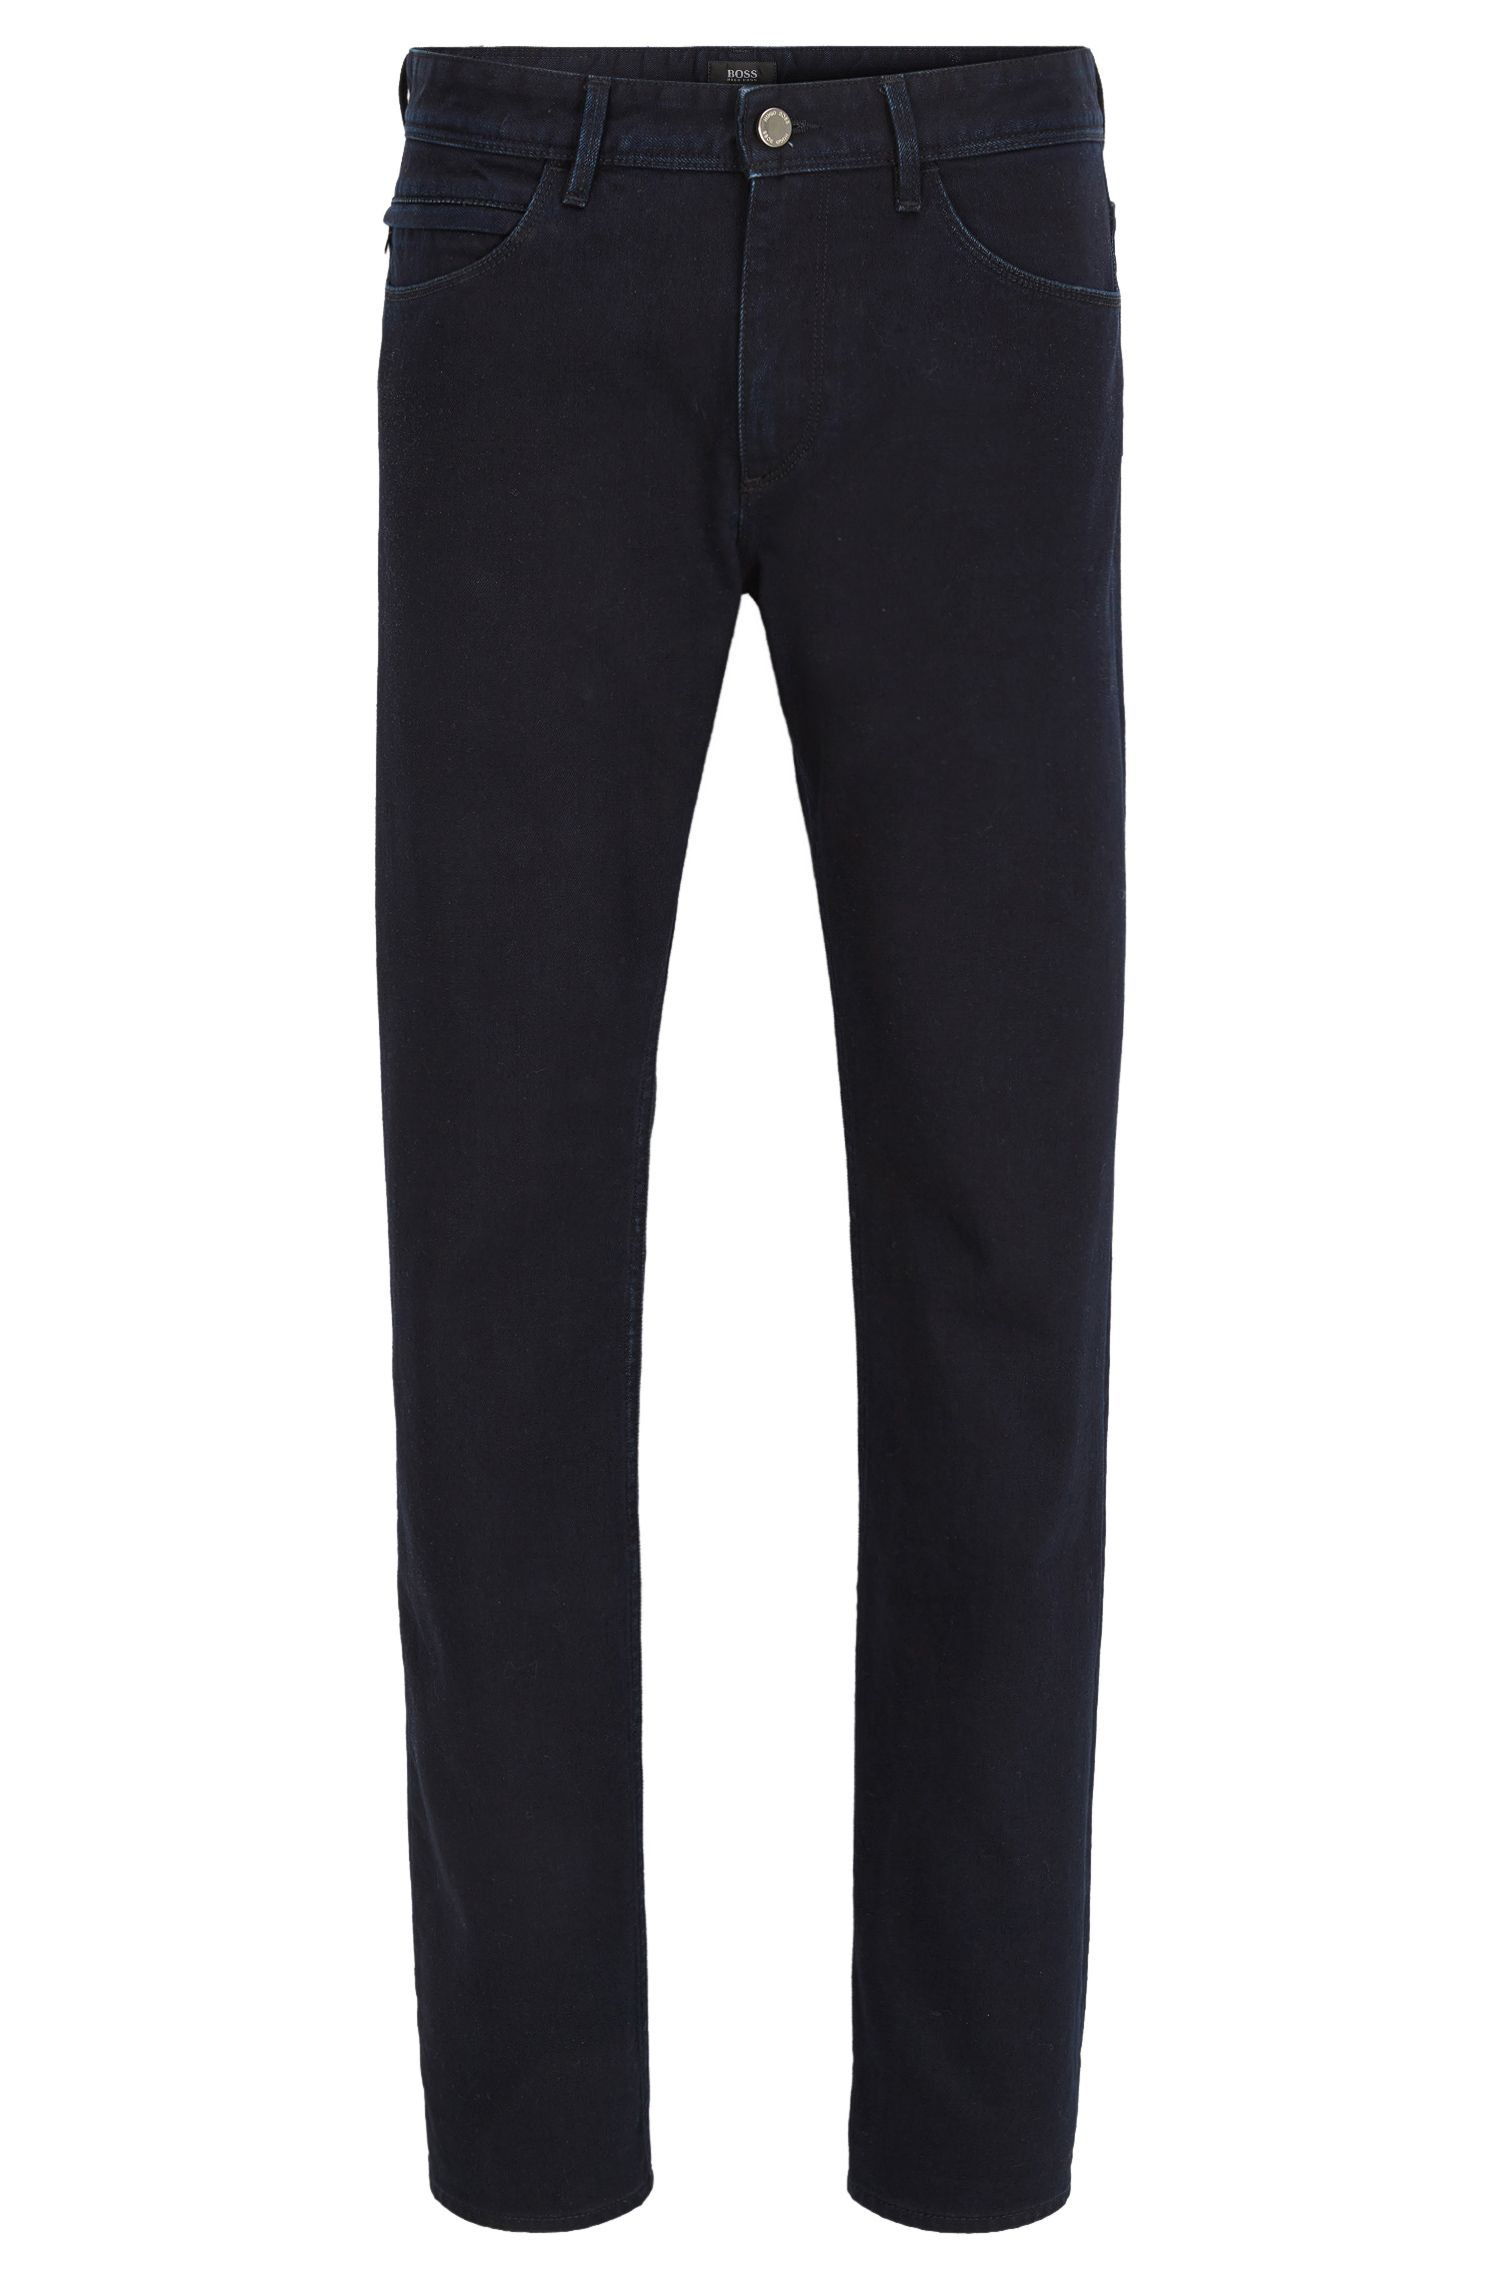 Jeans Slim Fit en denim stretch, de teinte bleu-noir finition Rinsed